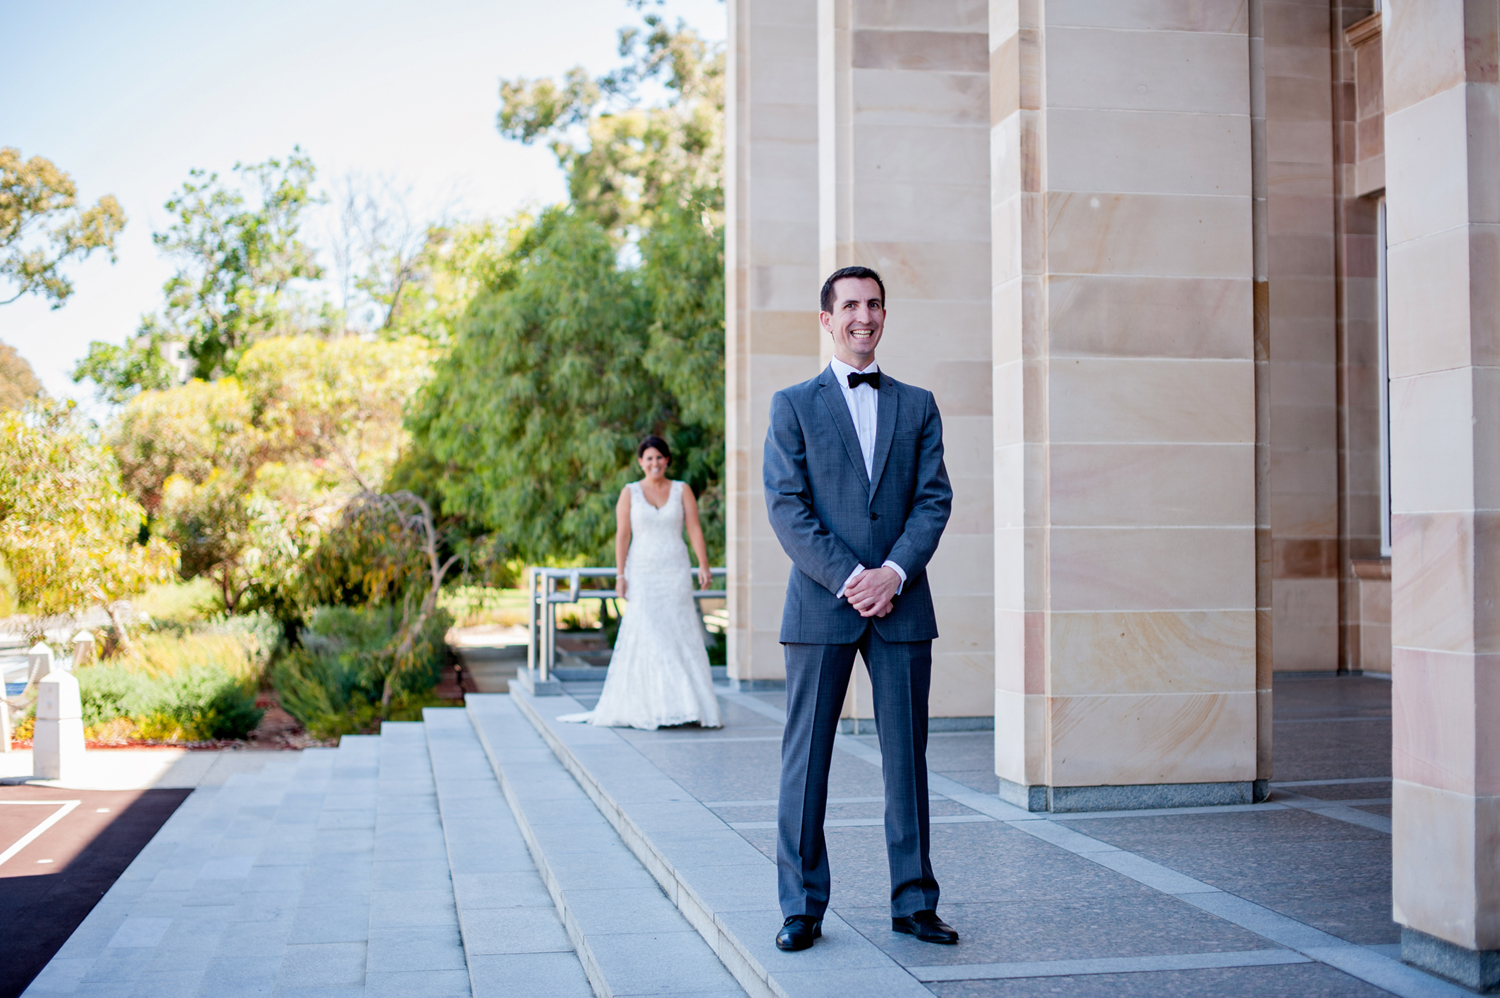 Perth Wedding Photographer Deanna Whyte Photography Natural Photos (4)